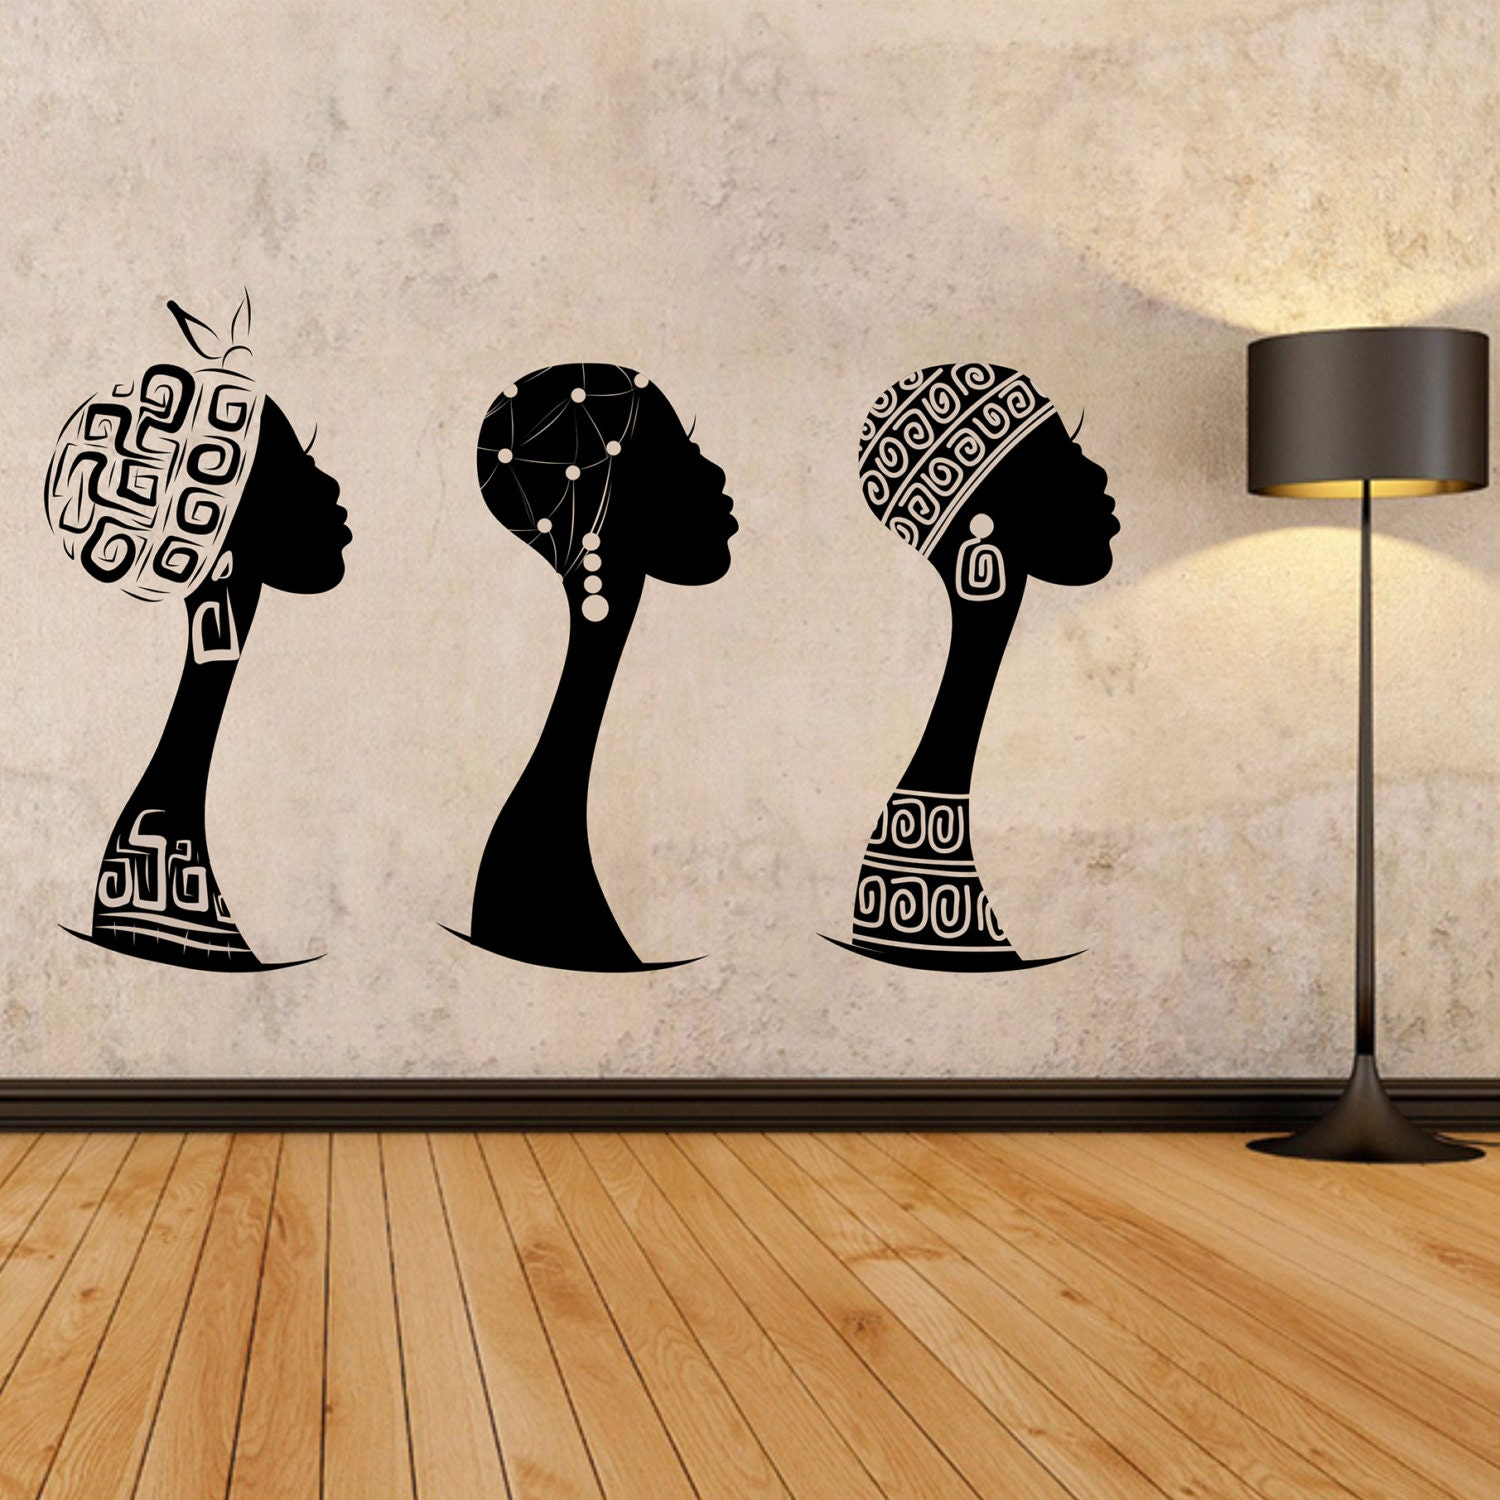 African women wall decal, African woman profile wall vinyl, Africa wall  decal, African silhouette decal, Black woman wall art, Ethnic 140